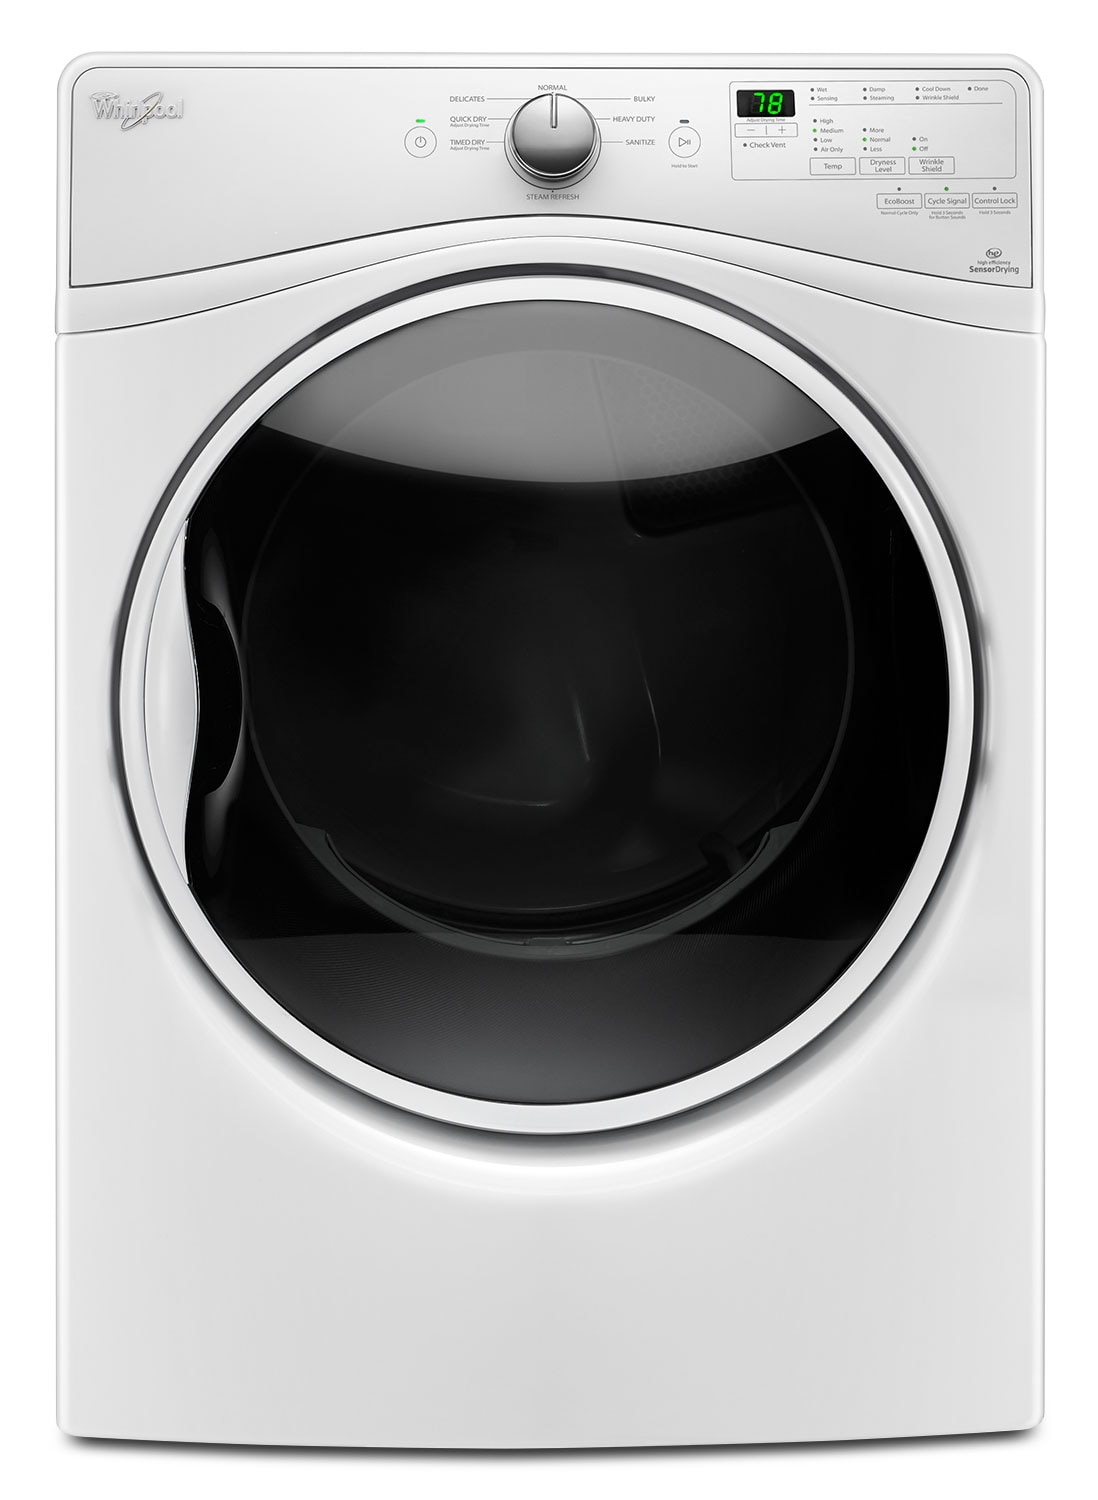 Whirlpool White Electric Dryer (7.4 Cu. Ft.) - YWED85HEFW